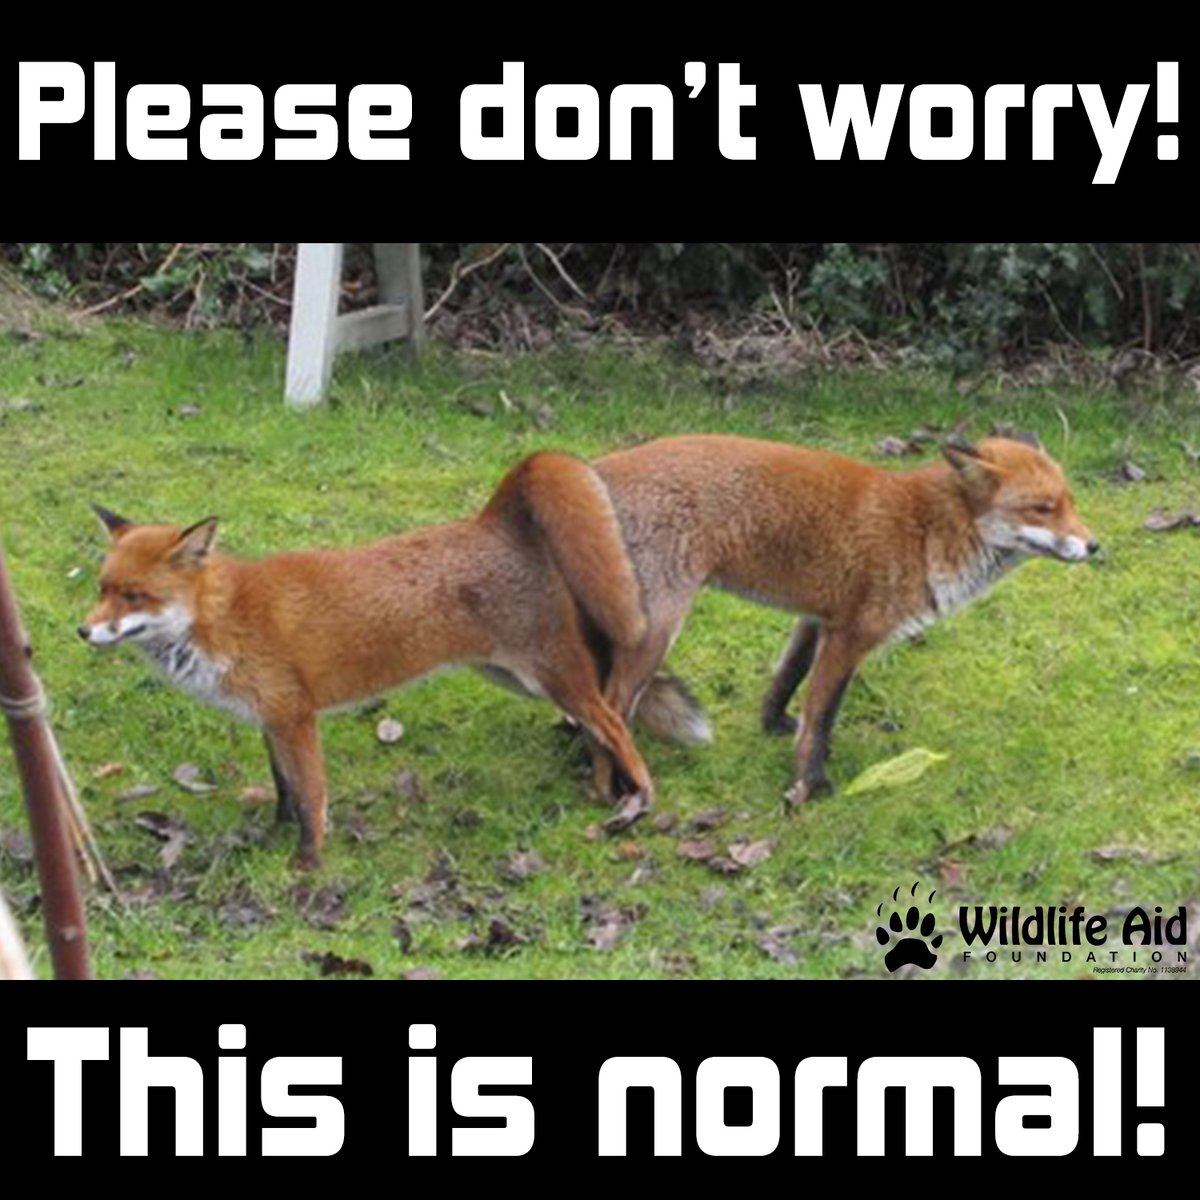 With more people at home during #lockdown, we are seeing a lot more calls regarding foxes that seem 'stuck together'.  Please be assured that this is a natural part of the #fox breeding process and they will separate by themselves after 30-60 minutes!